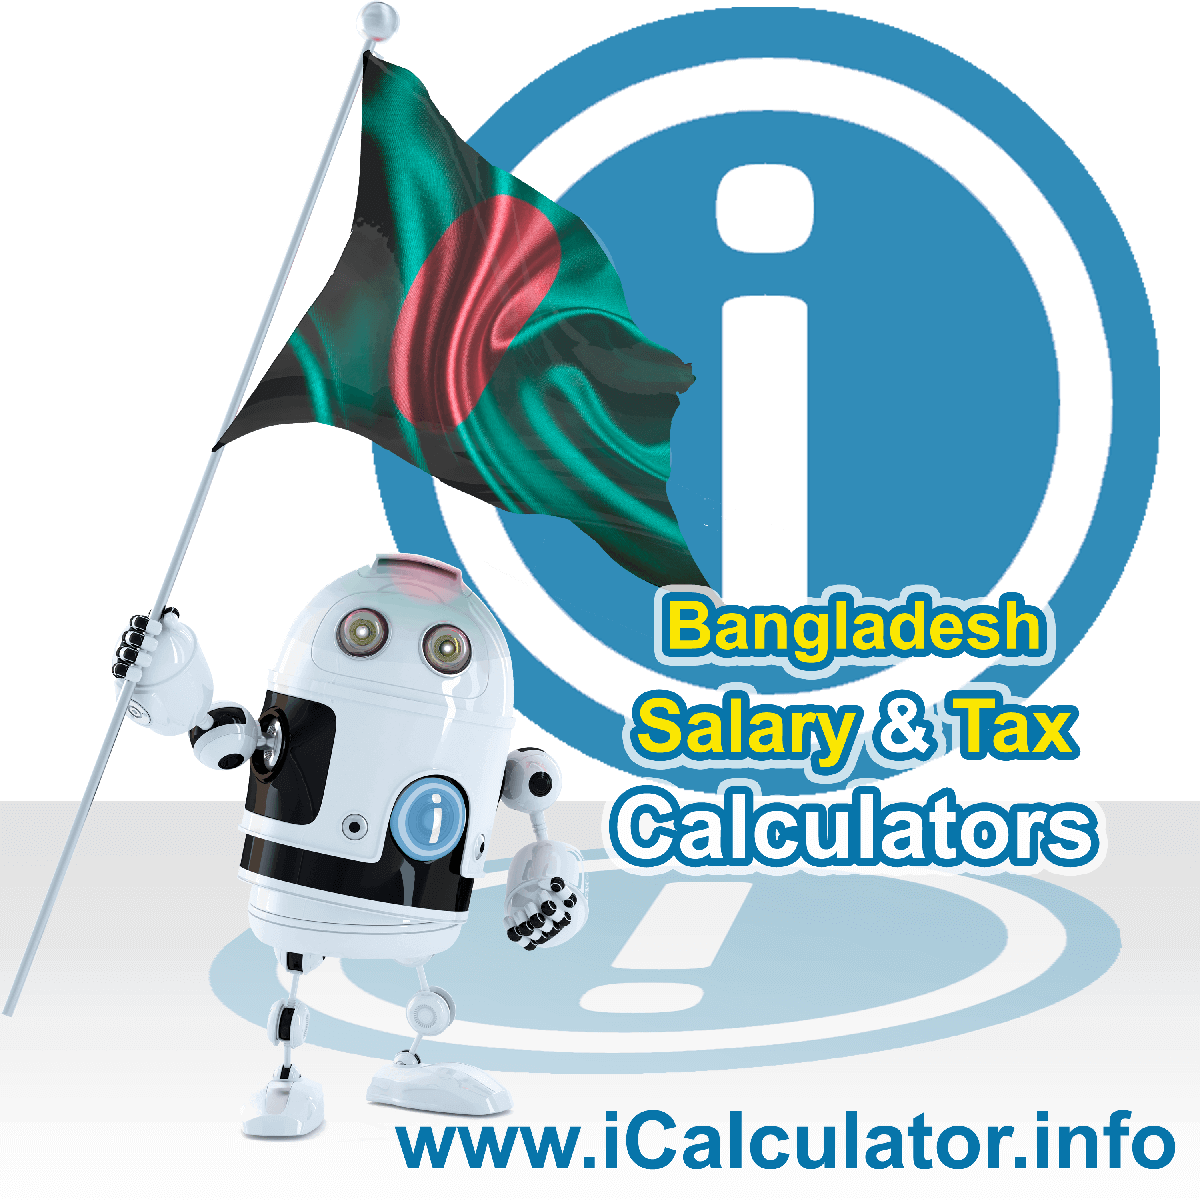 Bangladesh Salary Calculator. This image shows the Bangladeshese flag and information relating to the tax formula for the Bangladesh Tax Calculator